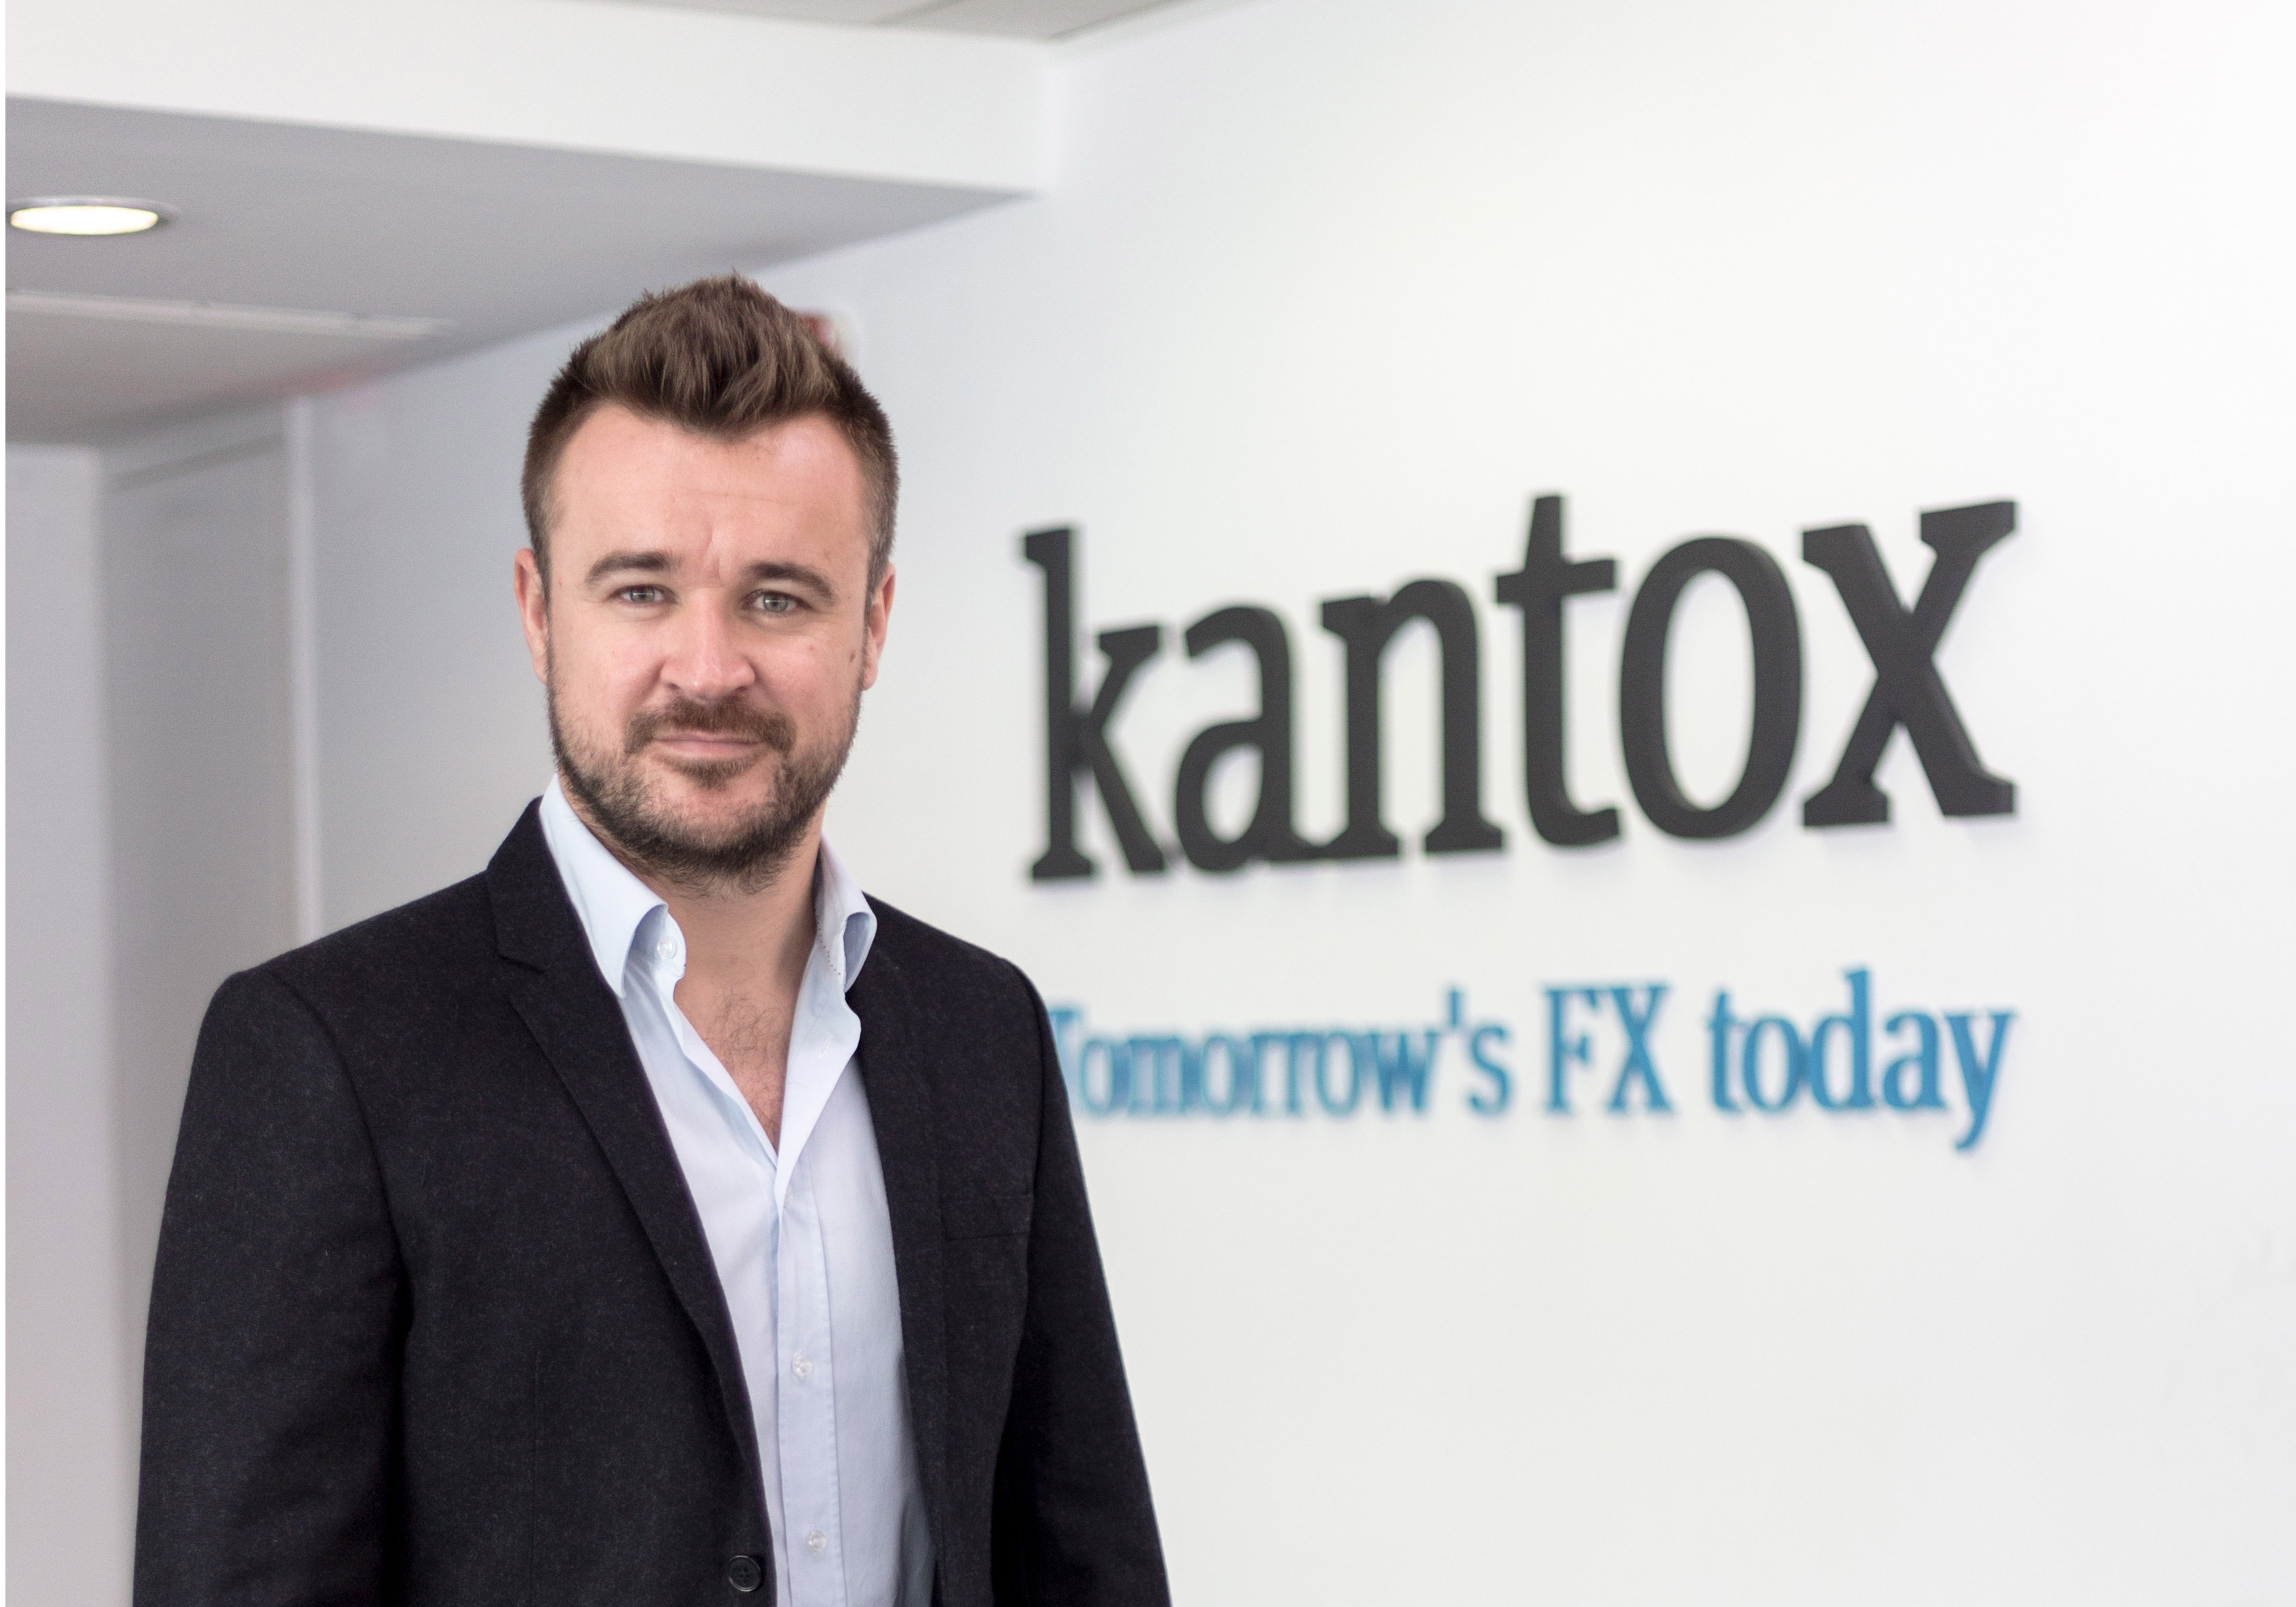 Interview with Philippe Gelis, CEO of Kantox on FX, Startups and Hiring